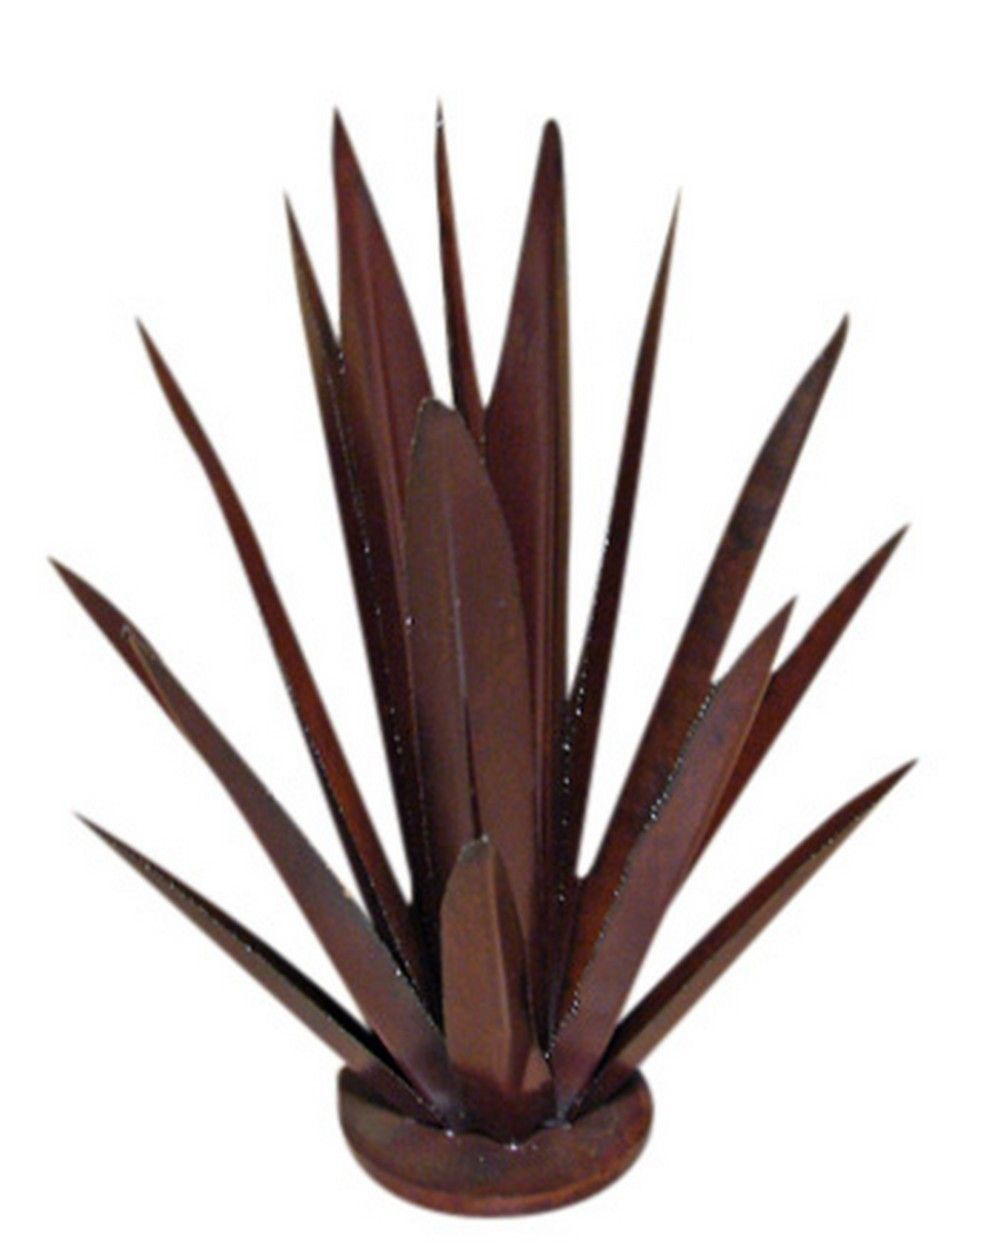 Image detail for metal agave plant sculpture rustic